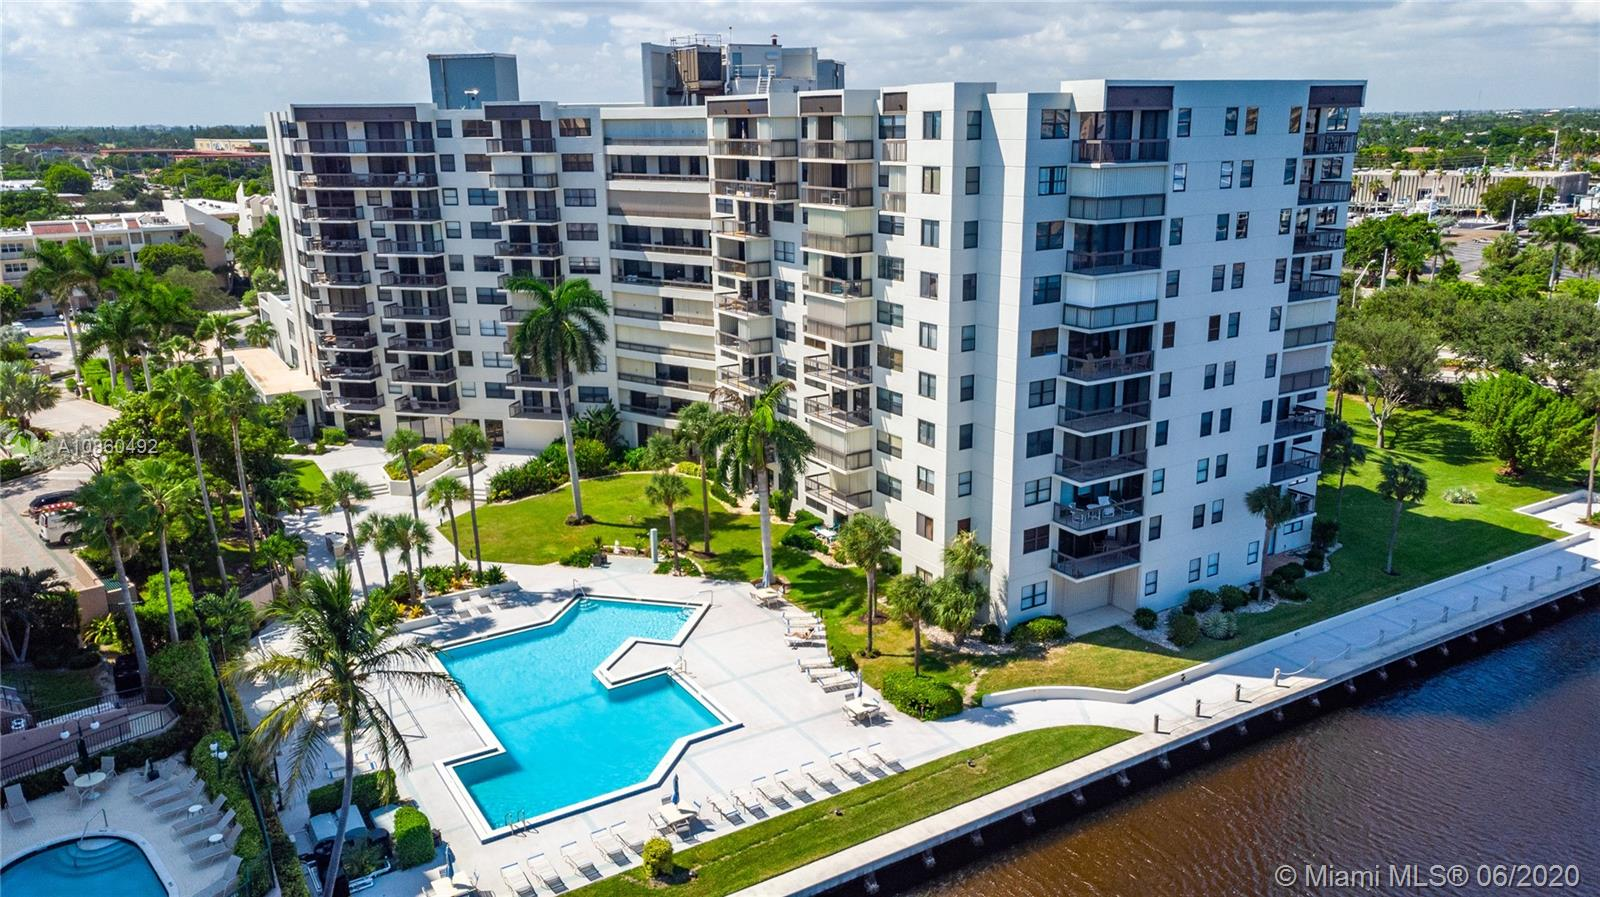 TASTEFULLY RENOVATED GARDEN CONDO WITH SPLIT FLOOR PLAN AND INTRACOASTAL VIEW! TREES, TREES, TRESS. COME WATCH THE BOATS. THE CONDO IS OVER 1450 SQF WITH TOP QUALITY FLOORS THOUGH OUT! OPEN KITCHEN, DINING & LIVING ALLOW FOR MAXIMUM LIGHT WITH HIGH-END PLANTATION SHUTTERS AND IMPACT WINDOWS. MASTER BEDROOM HAS FURNISHED WALK IN CLOSET WITH BUILT-INS THAT COMPLIMENT THE EN-SUITE BATHROOM. SECOND BEDROOM MAKES FOR THE PERFECT GUEST ROOM OR STUDY. BALCONY IS SURROUNDED BY GREEN SPACE. LAUNDRY IN UNIT. NEW A/C AND WATER HEATER! AMENITIES: PARTY ROOM, GYM, BILLIARD, 24 HR SECURITY AND COVERED PARKING. CAN RENT AFTER ONE YEAR WITH RESTRICTIONS. BUILDING HAS BEEN RECENTLY RENOVATED AND KNOWN FOR ITS STYLE AND HIGH-END QUALITY LIFESTYLE. MINUTES TO THE BEACH! COME LIVE THE DREAM. THIS IS FLORIDA!